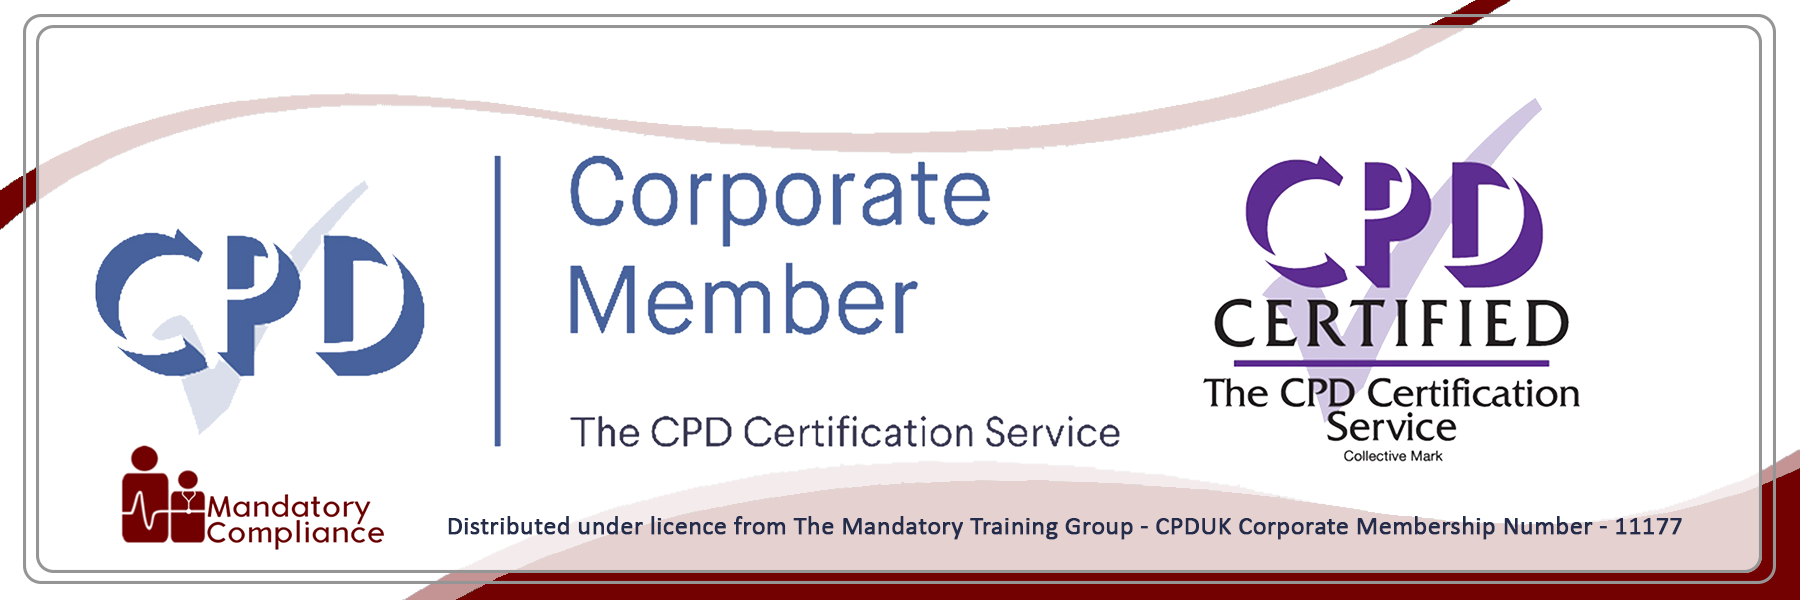 Moving and Handling People - Online Training Course - CPD Accredited - Mandatory Compliance UK -